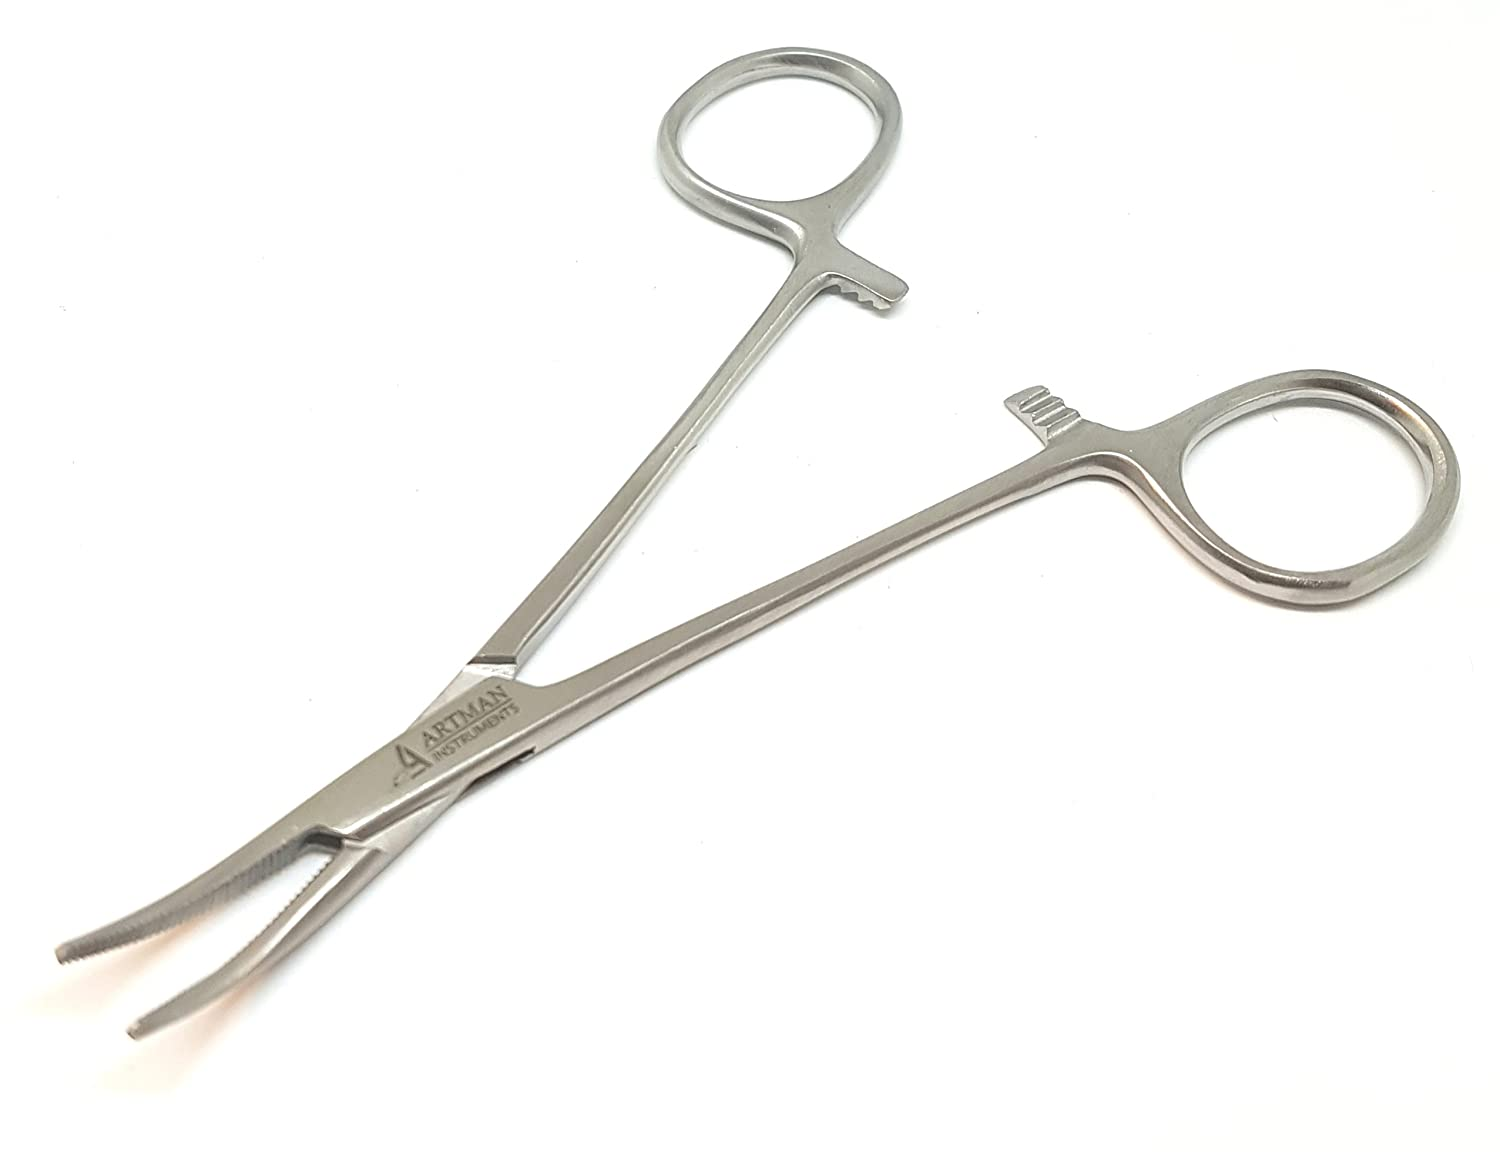 Artery forceps curved 5 inches mosquito orthodontic Dental Surgical  hemostat BY WISE LINKERS